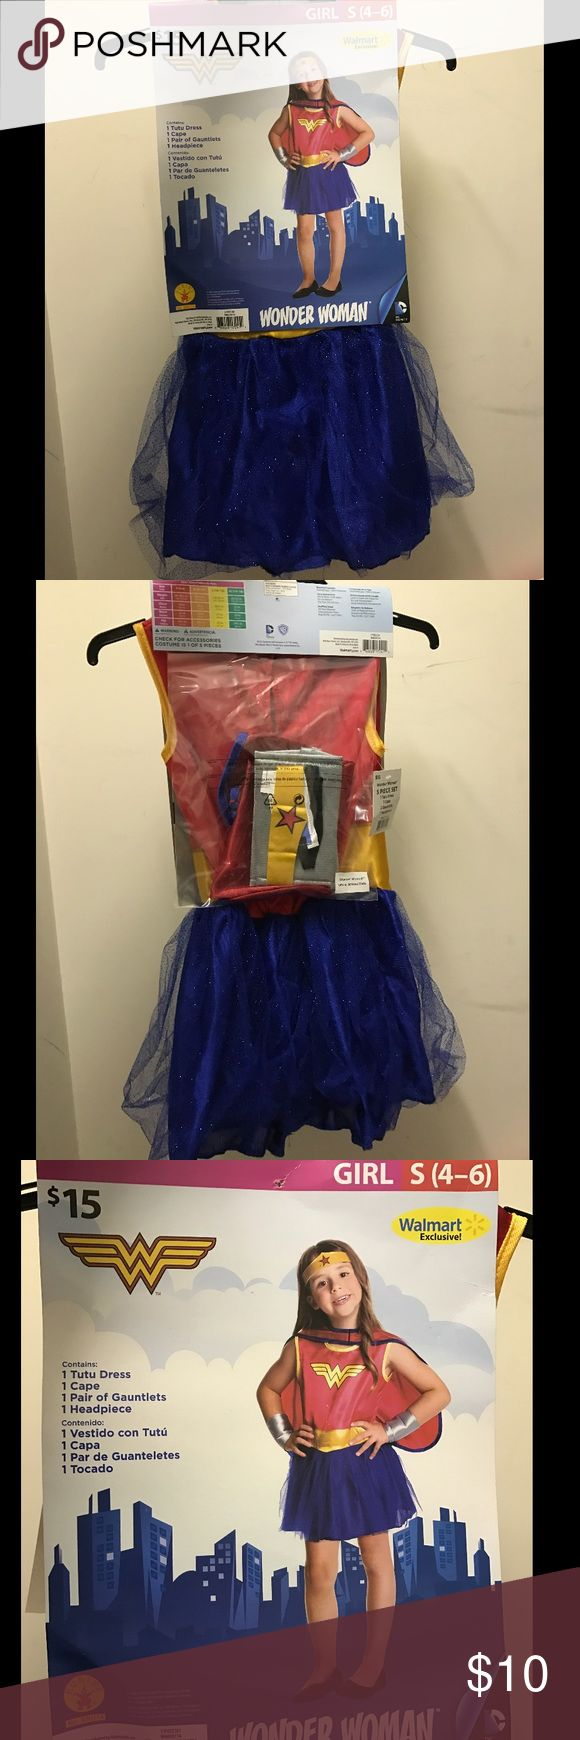 👘👑Wonder Woman👑👘 Children's costume NWT- Wonder Woman, girls size small, costume. Brand new, never worn. Bundle and save. Please feel free to make an offer, using the offer tab. Thank you and happy shopping. Walmart Costumes Superhero